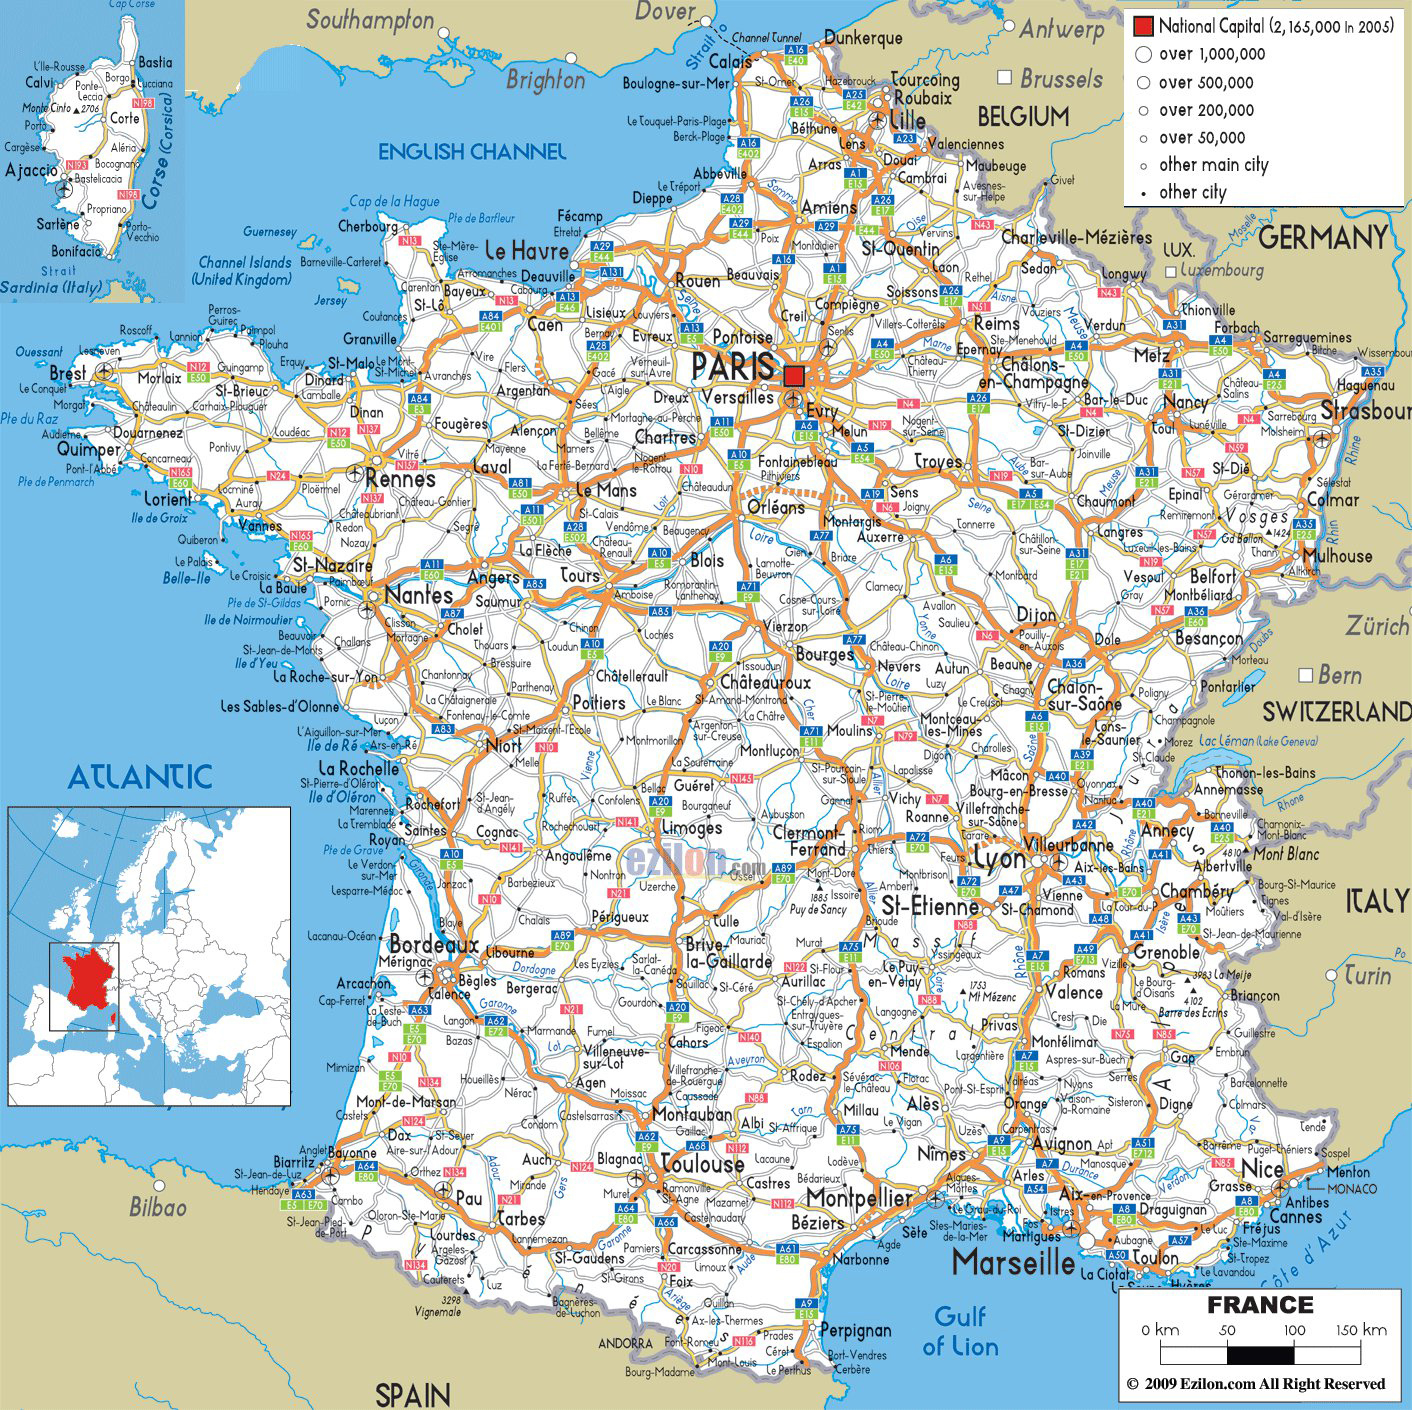 Large Detailed Road Map Of France With All Cities And Airports - Printable Driving Map Of Iceland